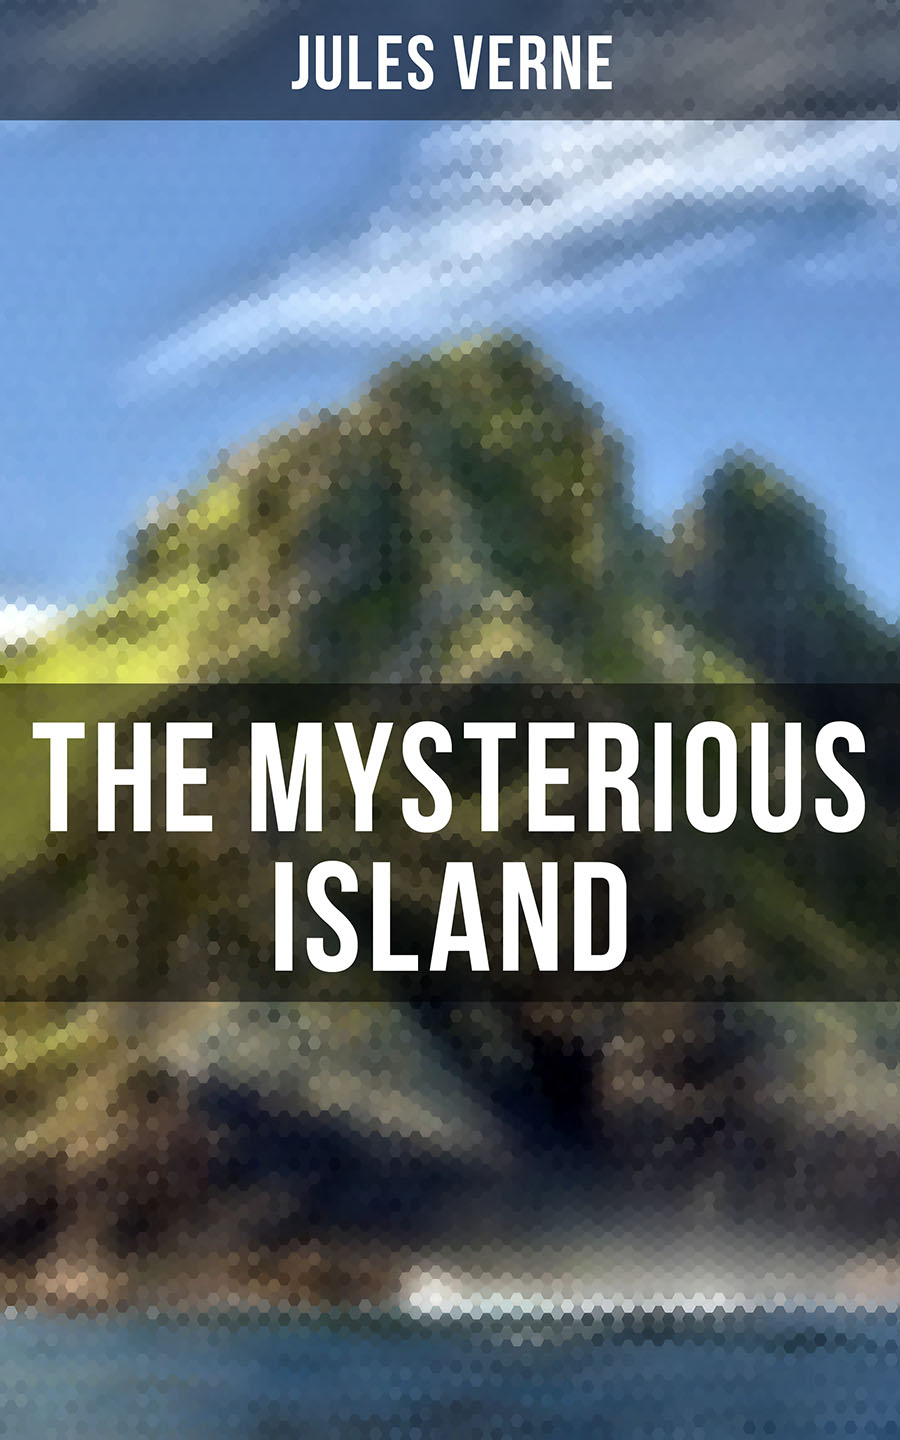 the mysterious island trilogy dropped from the clouds abandoned the secret of the island complete edition